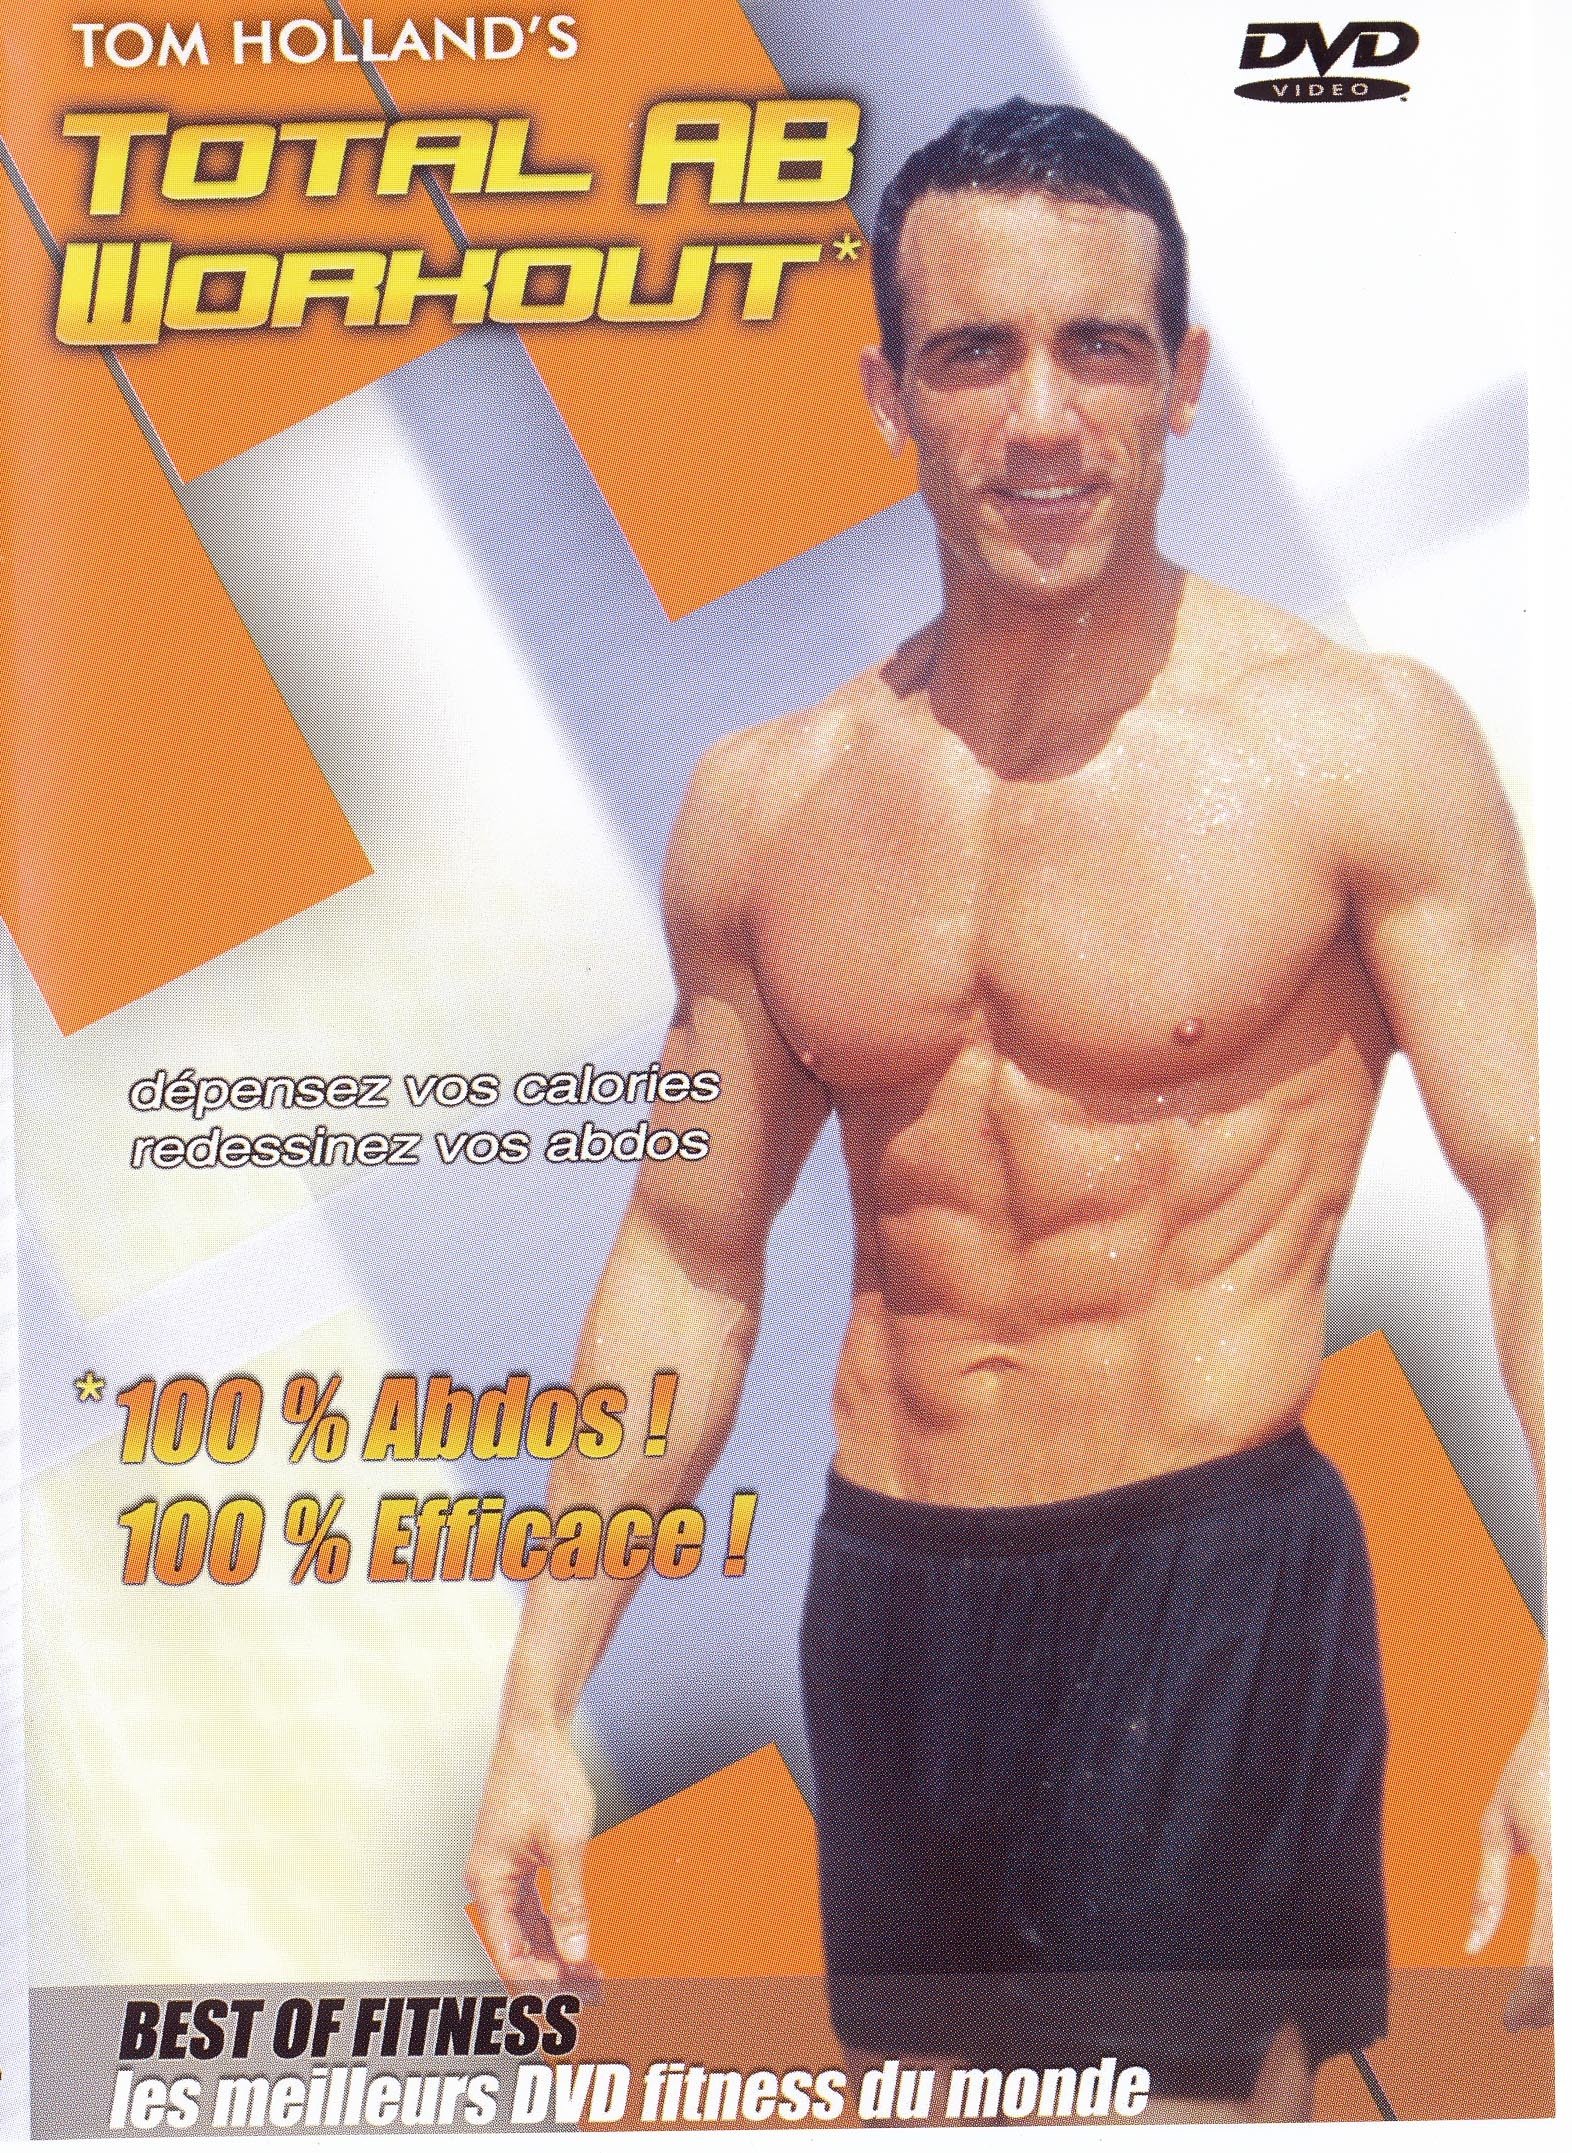 TOTAL AB WORKOUT - DVD  TOM HOLLAND